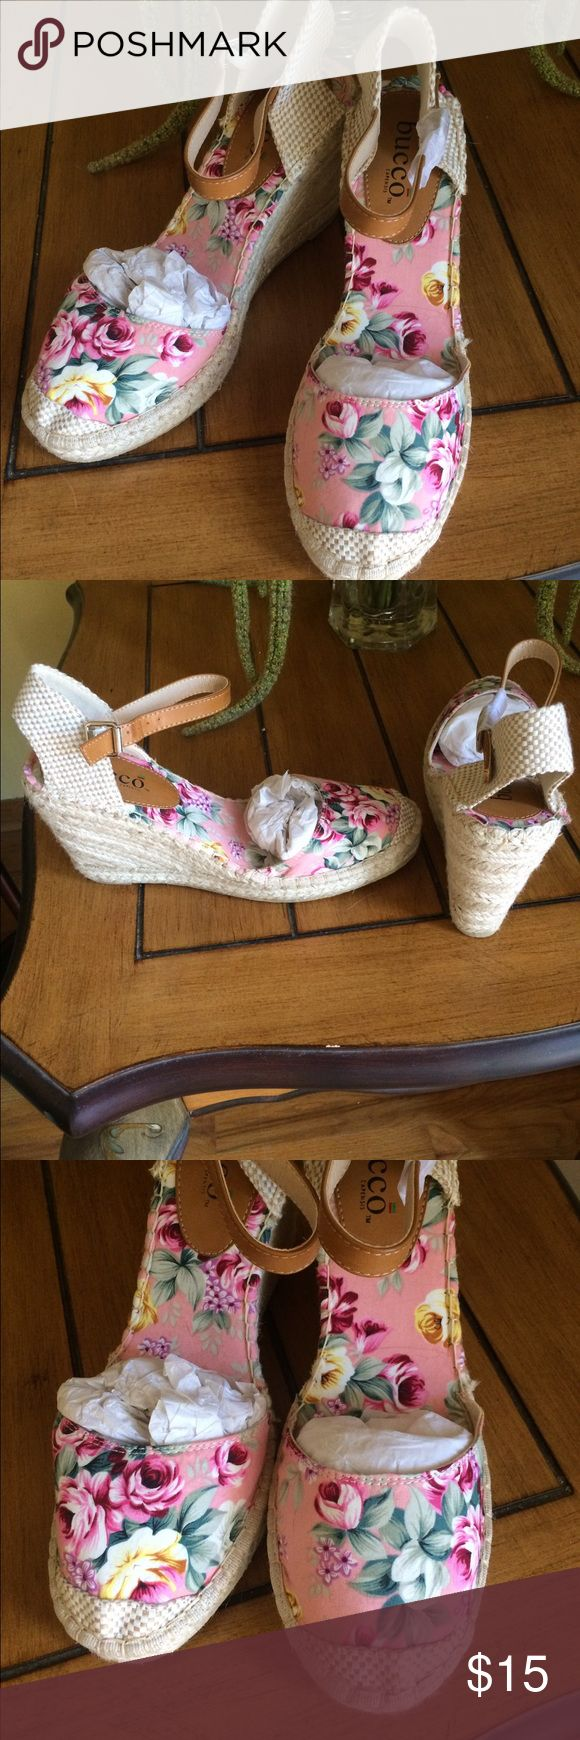 NWOB ADORABLE FLORAL ESPADRILLES NWOB ADORABLE PINK FLORAL ESPADRILLES. Look vintage... Perfect for Spring and Summer... Bucco Shoes Espadrilles